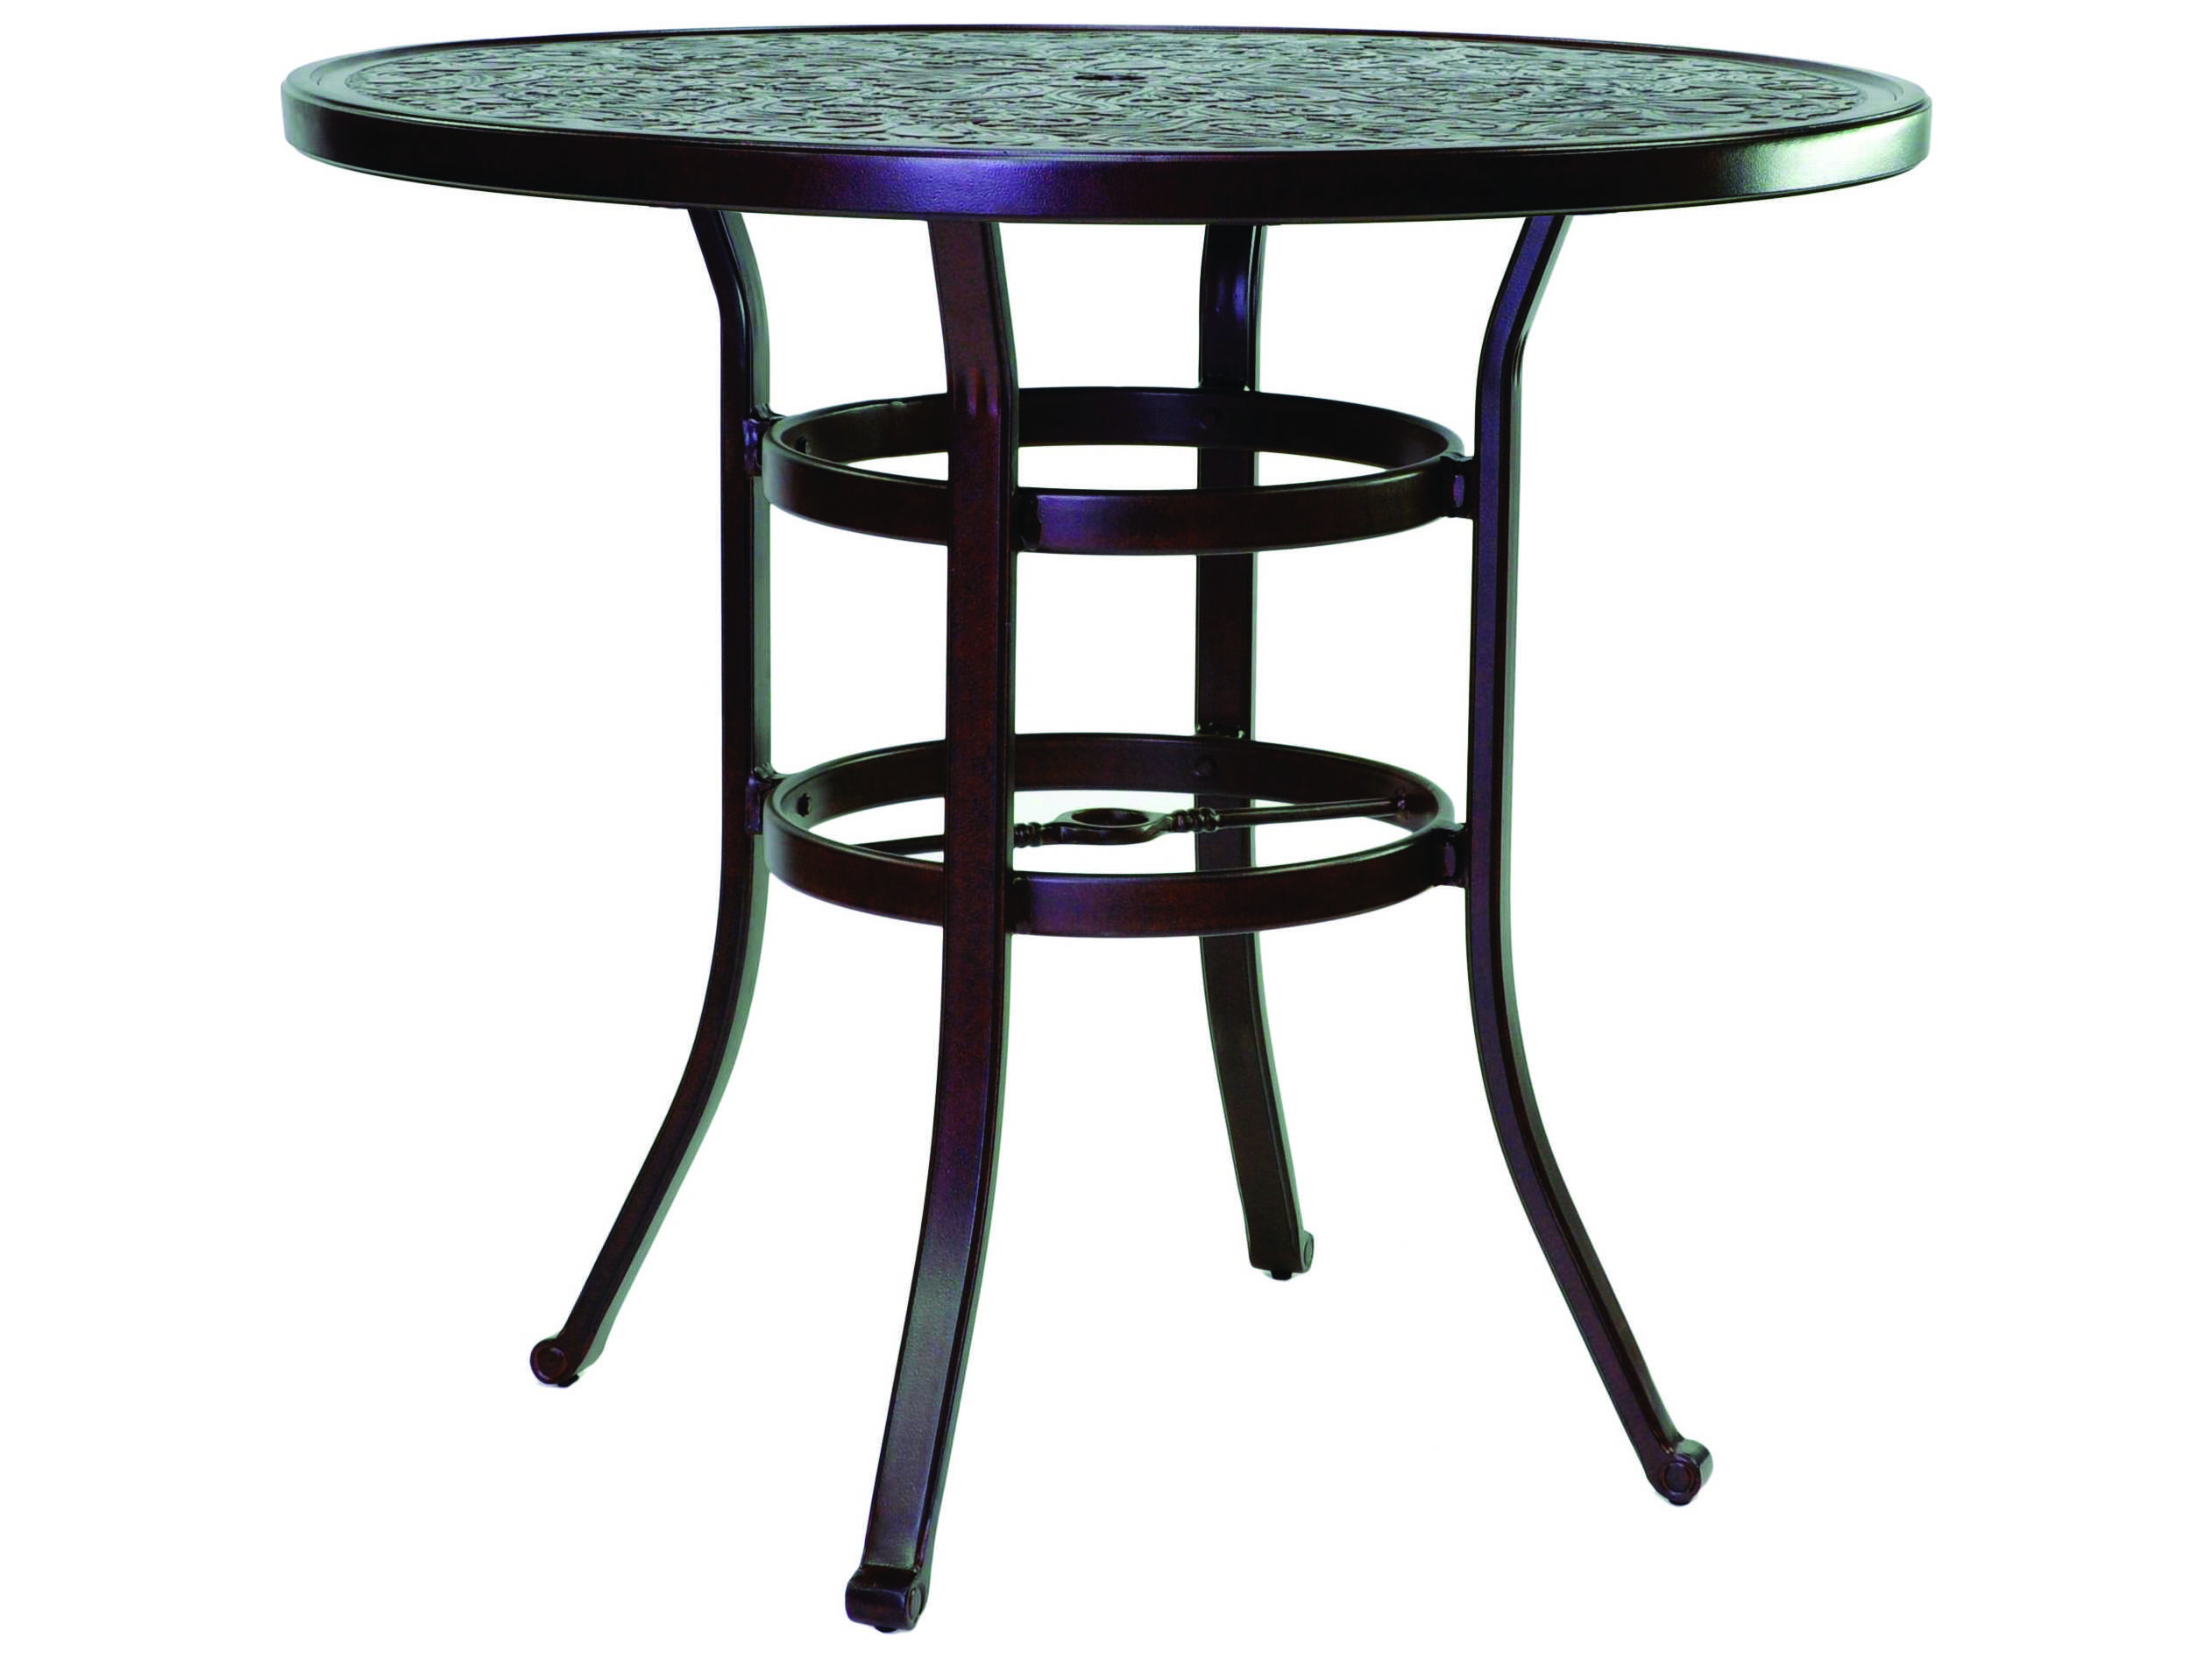 castelle vintage cast aluminum 42 48 round counter height table ready to assemble nce42. Black Bedroom Furniture Sets. Home Design Ideas